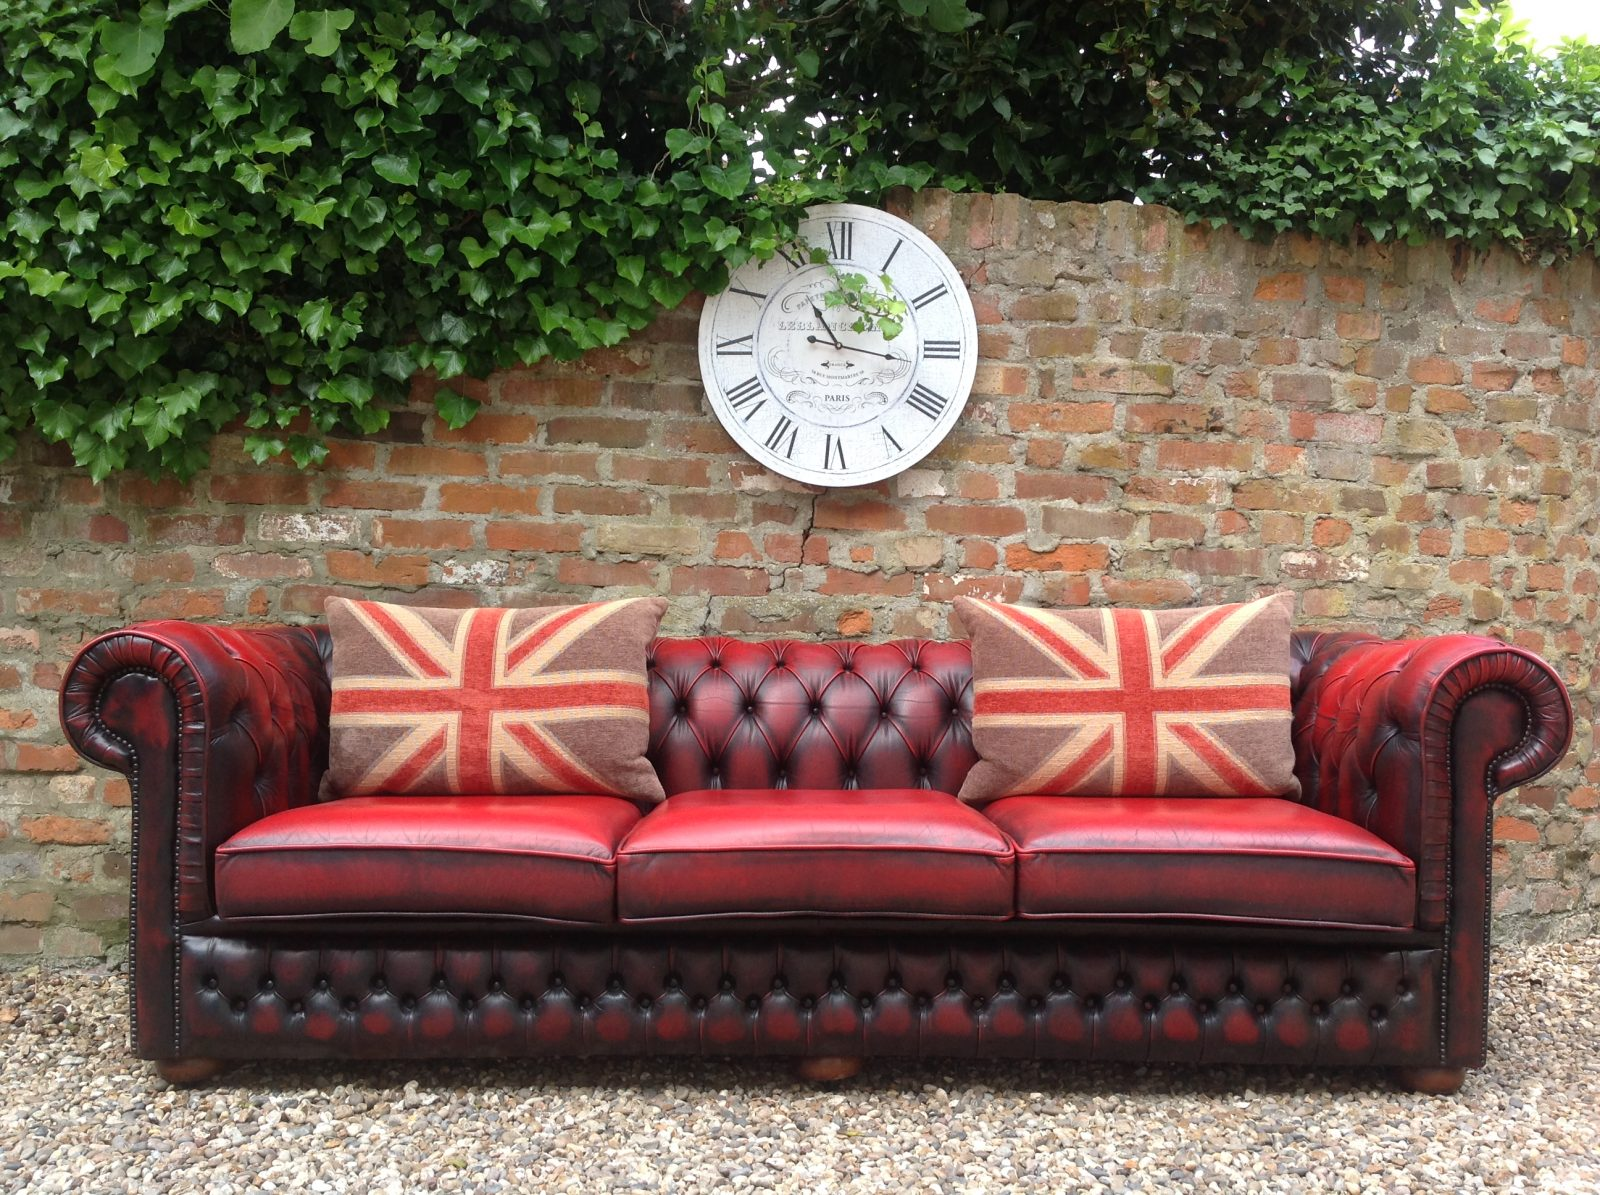 Oxblood 4 Seater Chesterfield Sofa…..